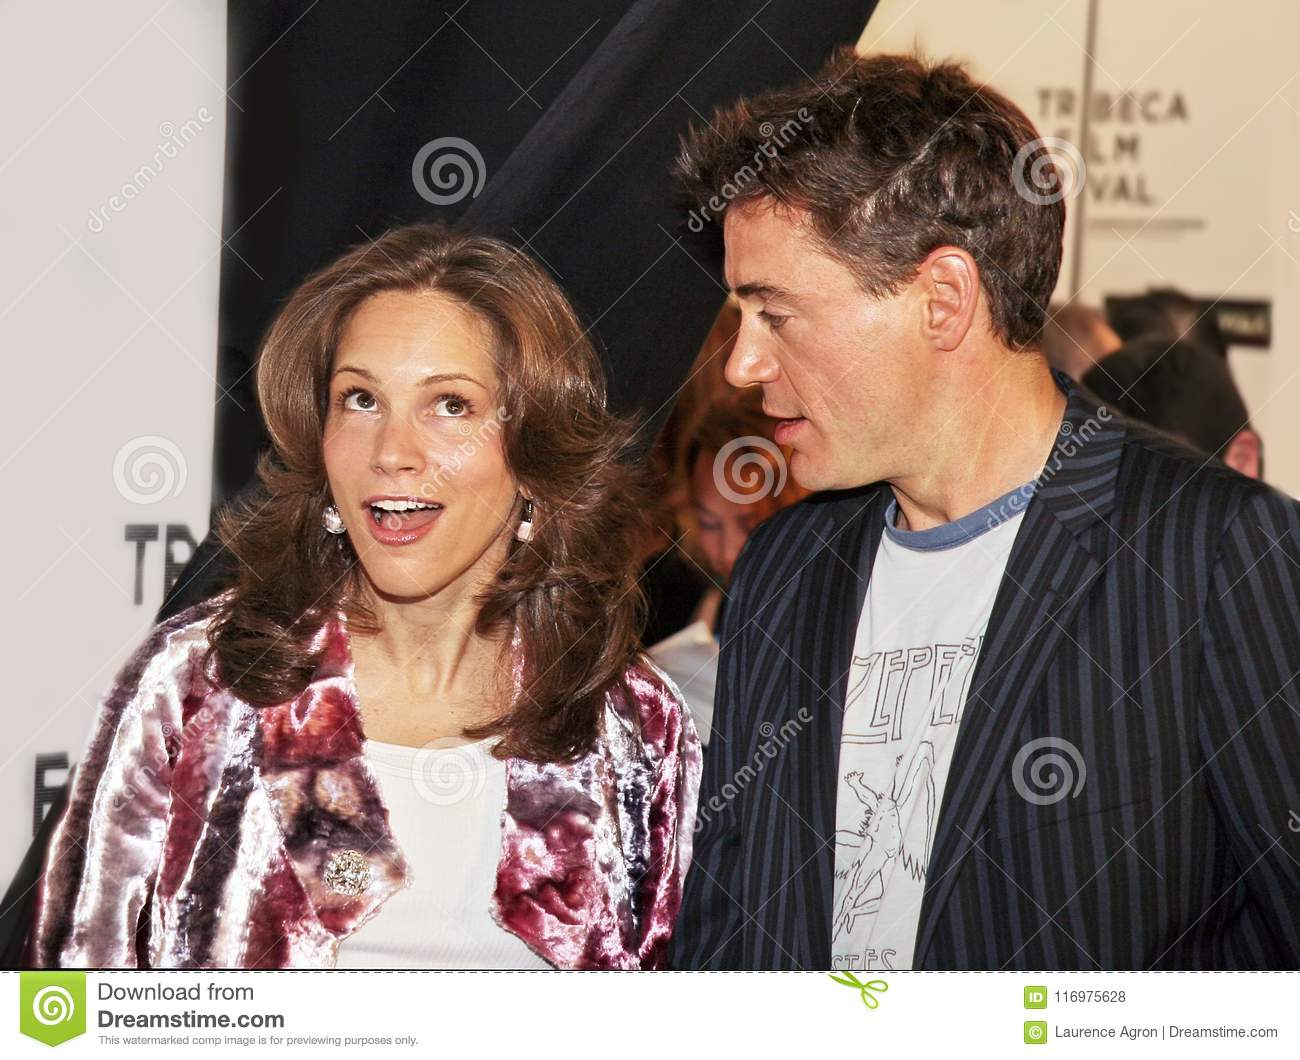 Communication on this topic: Kim Rodriguez (b. 1994), susan-downey/